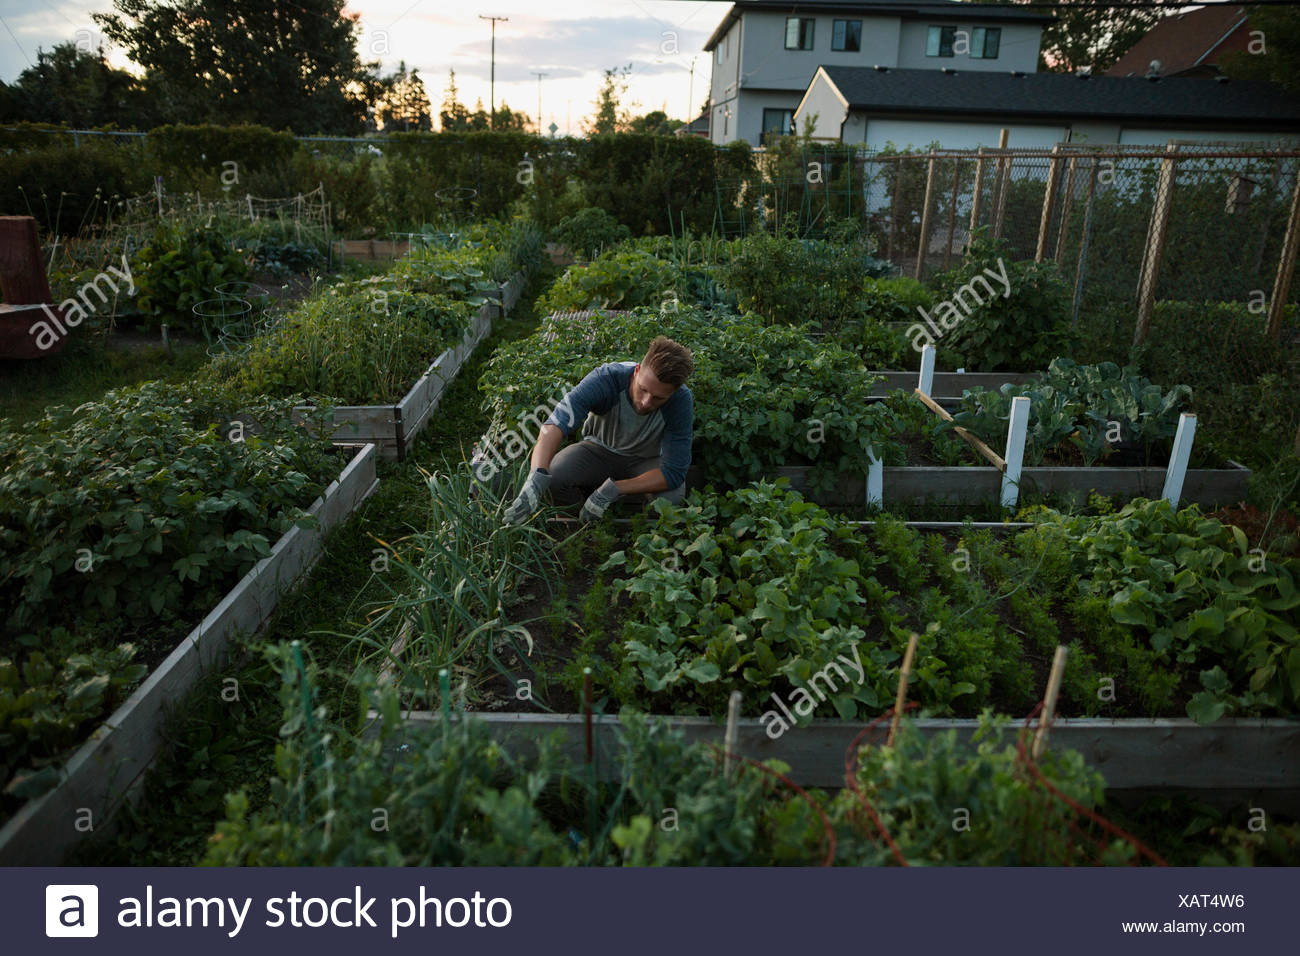 Man tending to vegetable garden at dusk - Stock Image